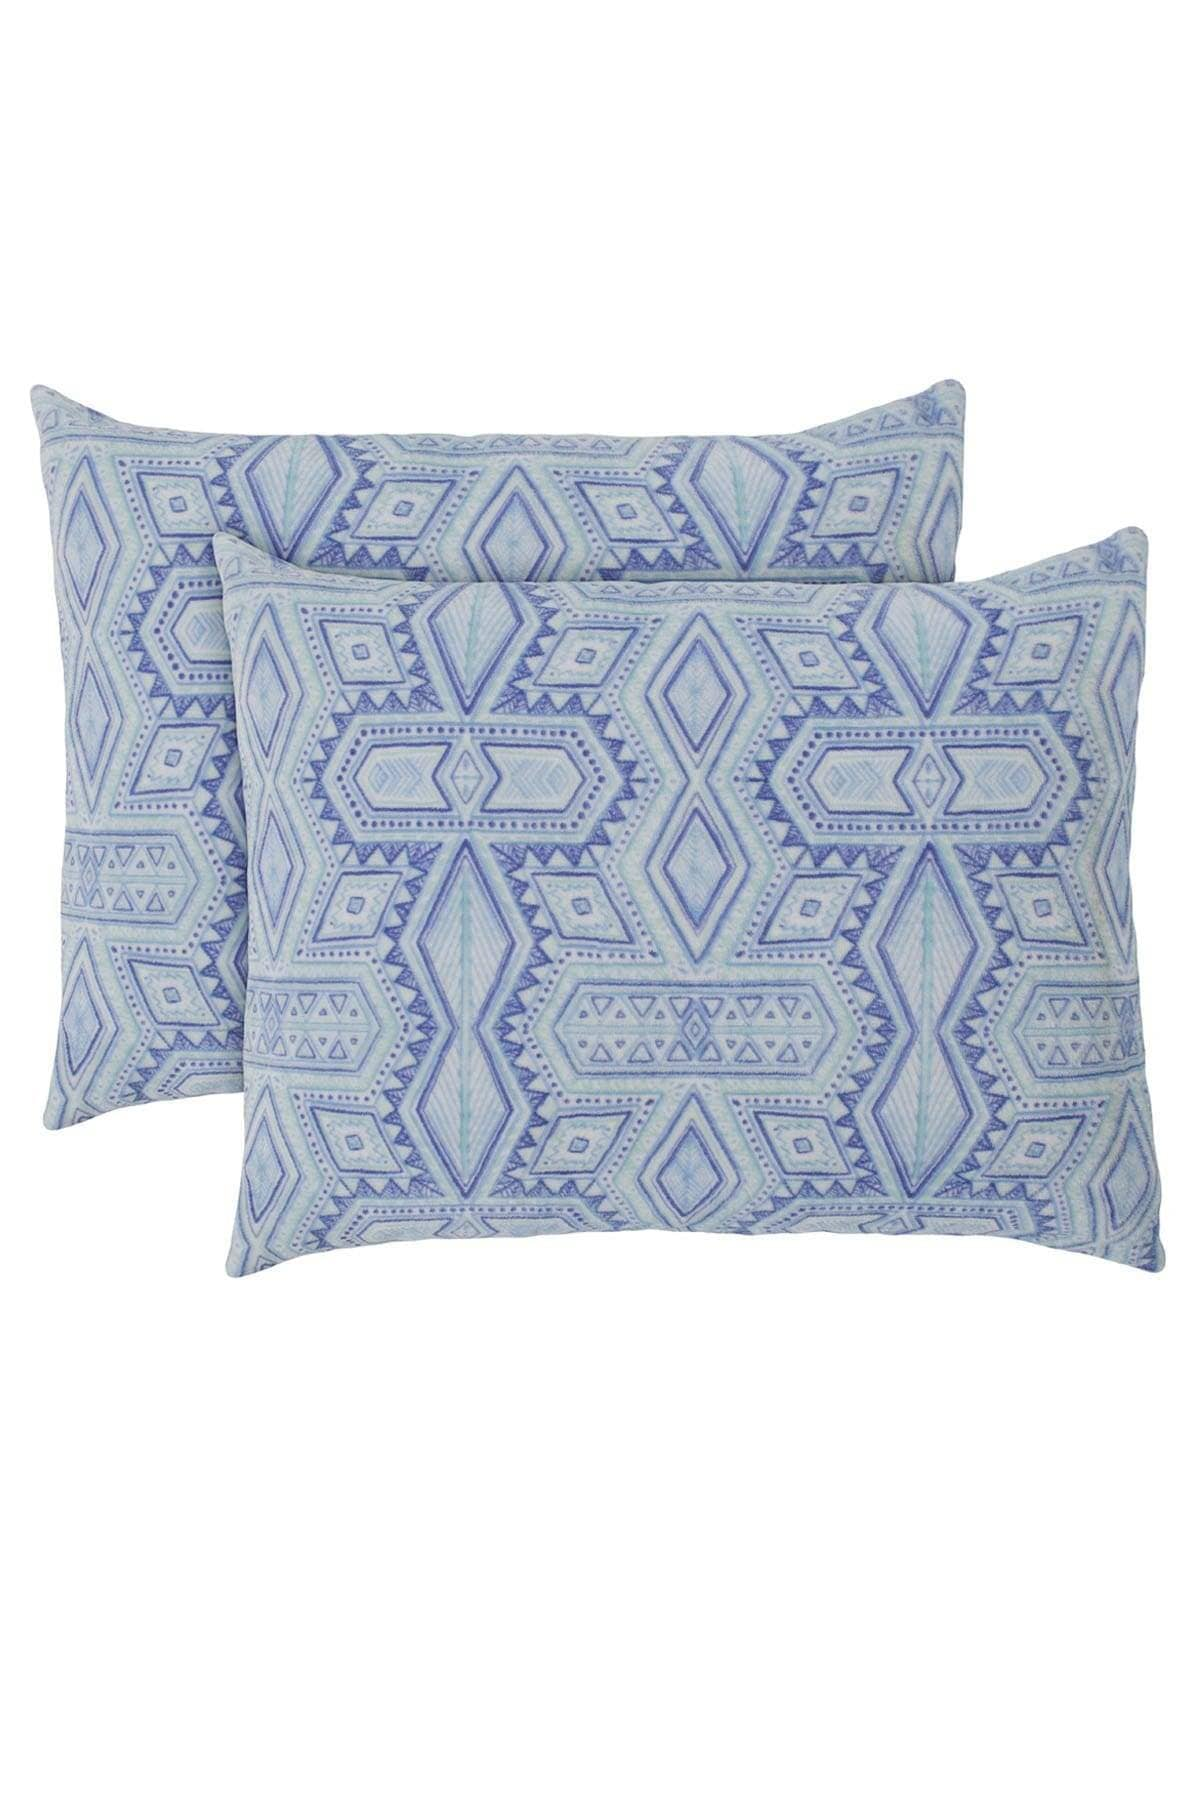 Ivory Ella BEDDING Rory Aqua Ultra Soft Plush Pillow Pair